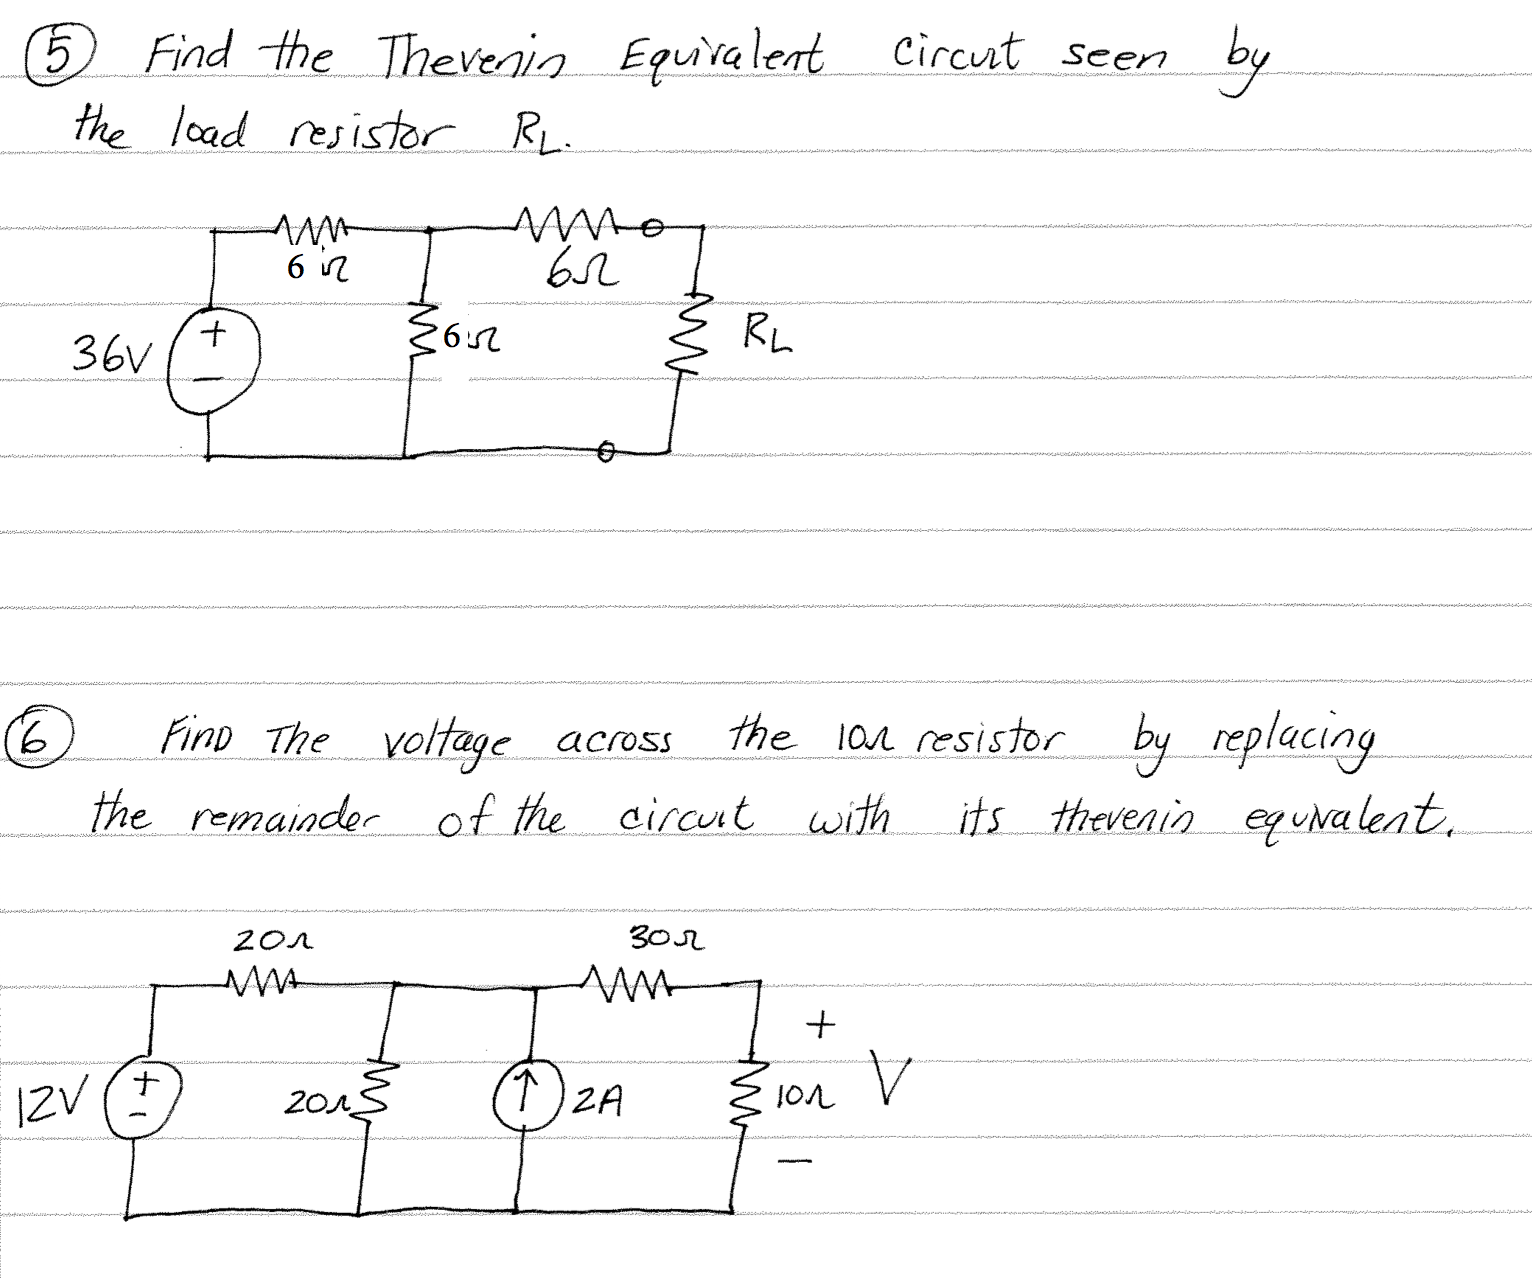 Solved 5 Find The Thevenin Equivalent Circuit Seen By Th It39s Possible In Some Cases To Deduce Current Very Simple Circuits Load Resistor Rl 6 Voltage Across